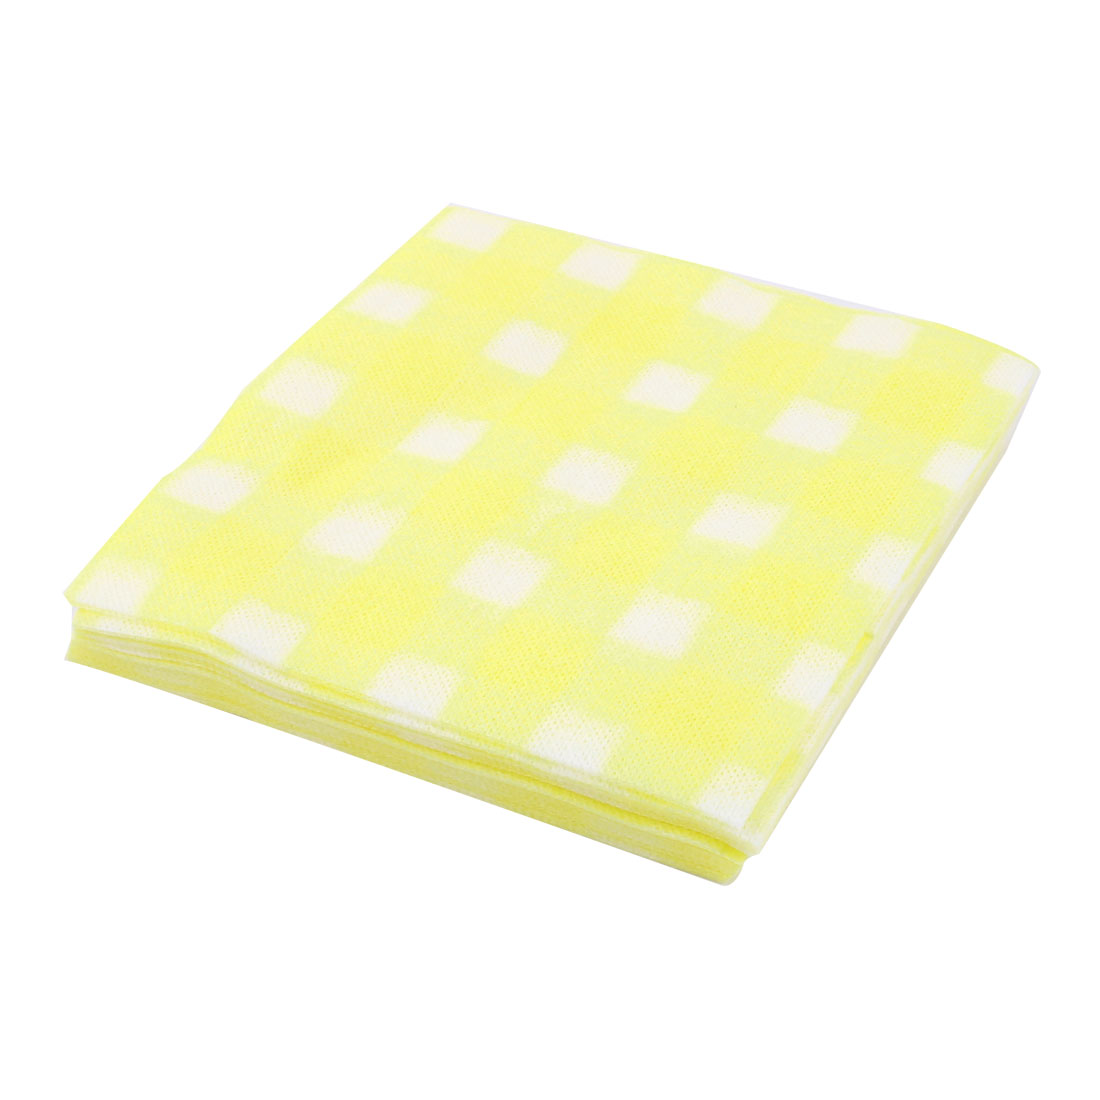 Facial Wipe Clean Spa Hair Salon Disposable Beauty Towel 18 x 18cm 60pcs Yellow